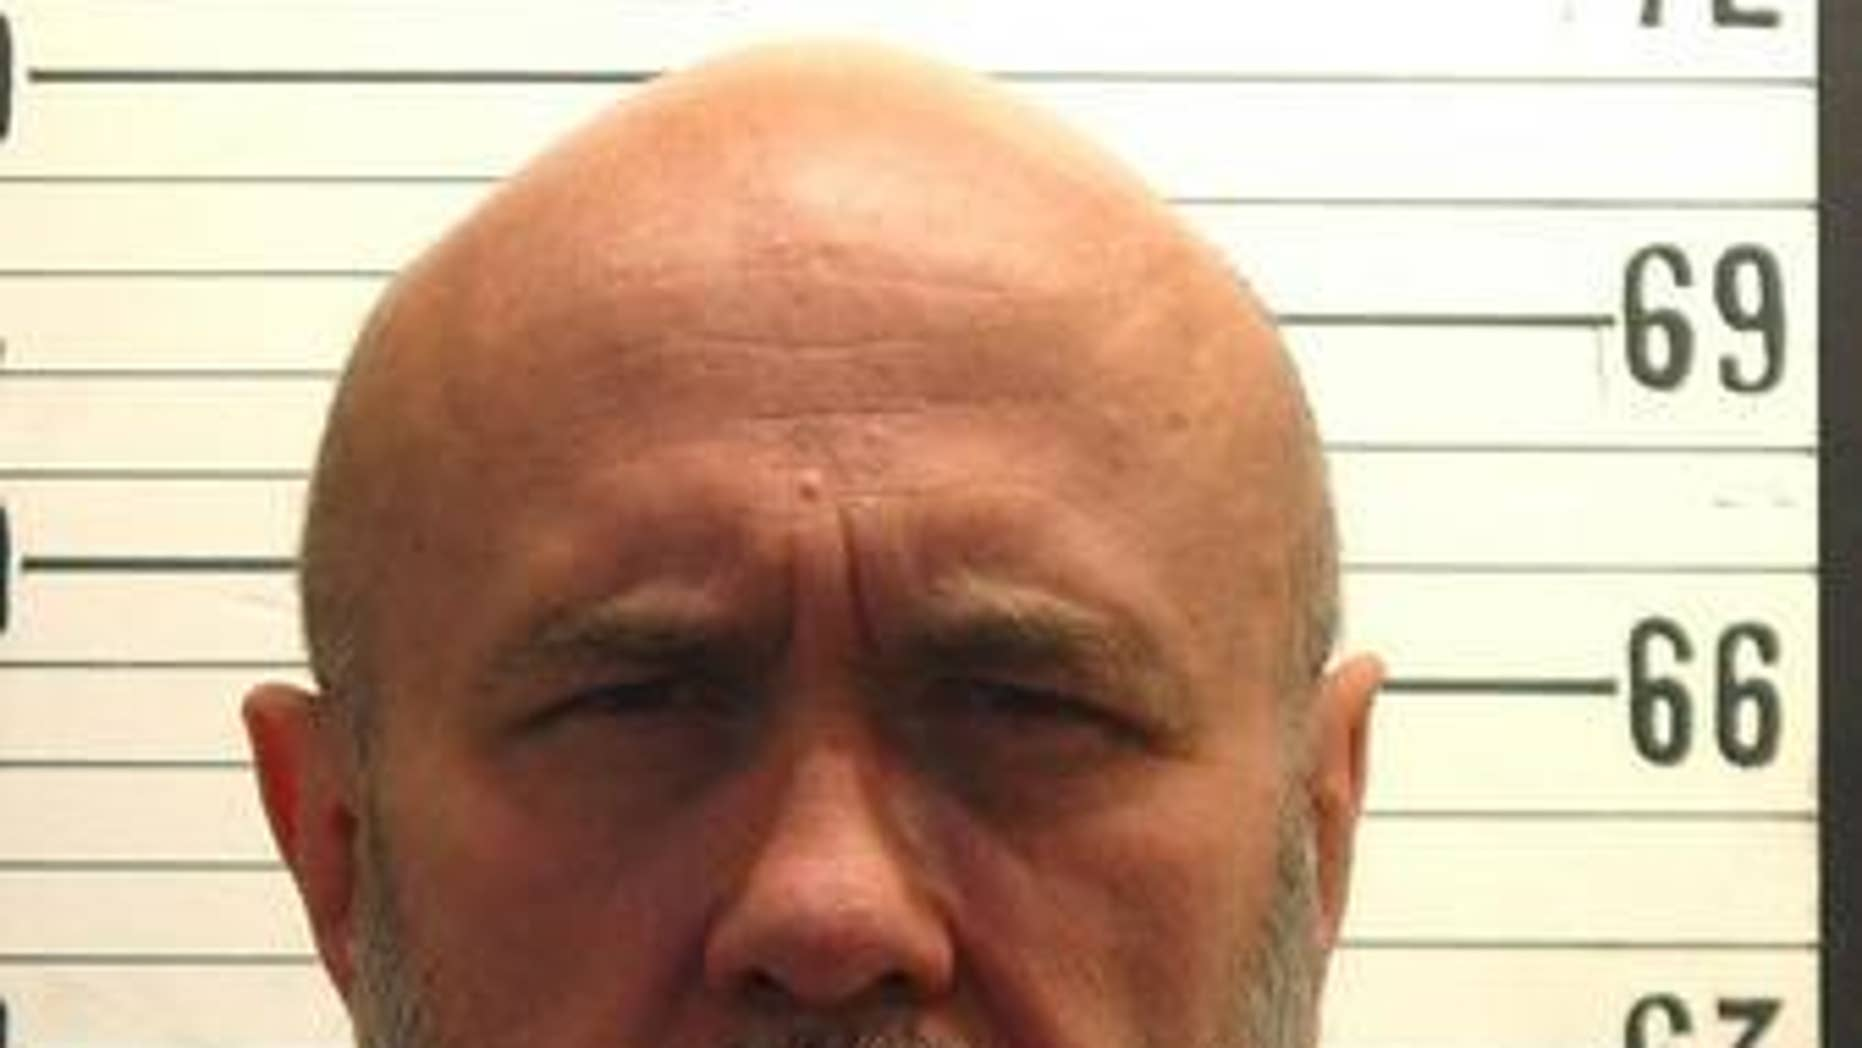 Edmund Zagorski is scheduled to be executed Thursday. He has requested to die by electrocution.